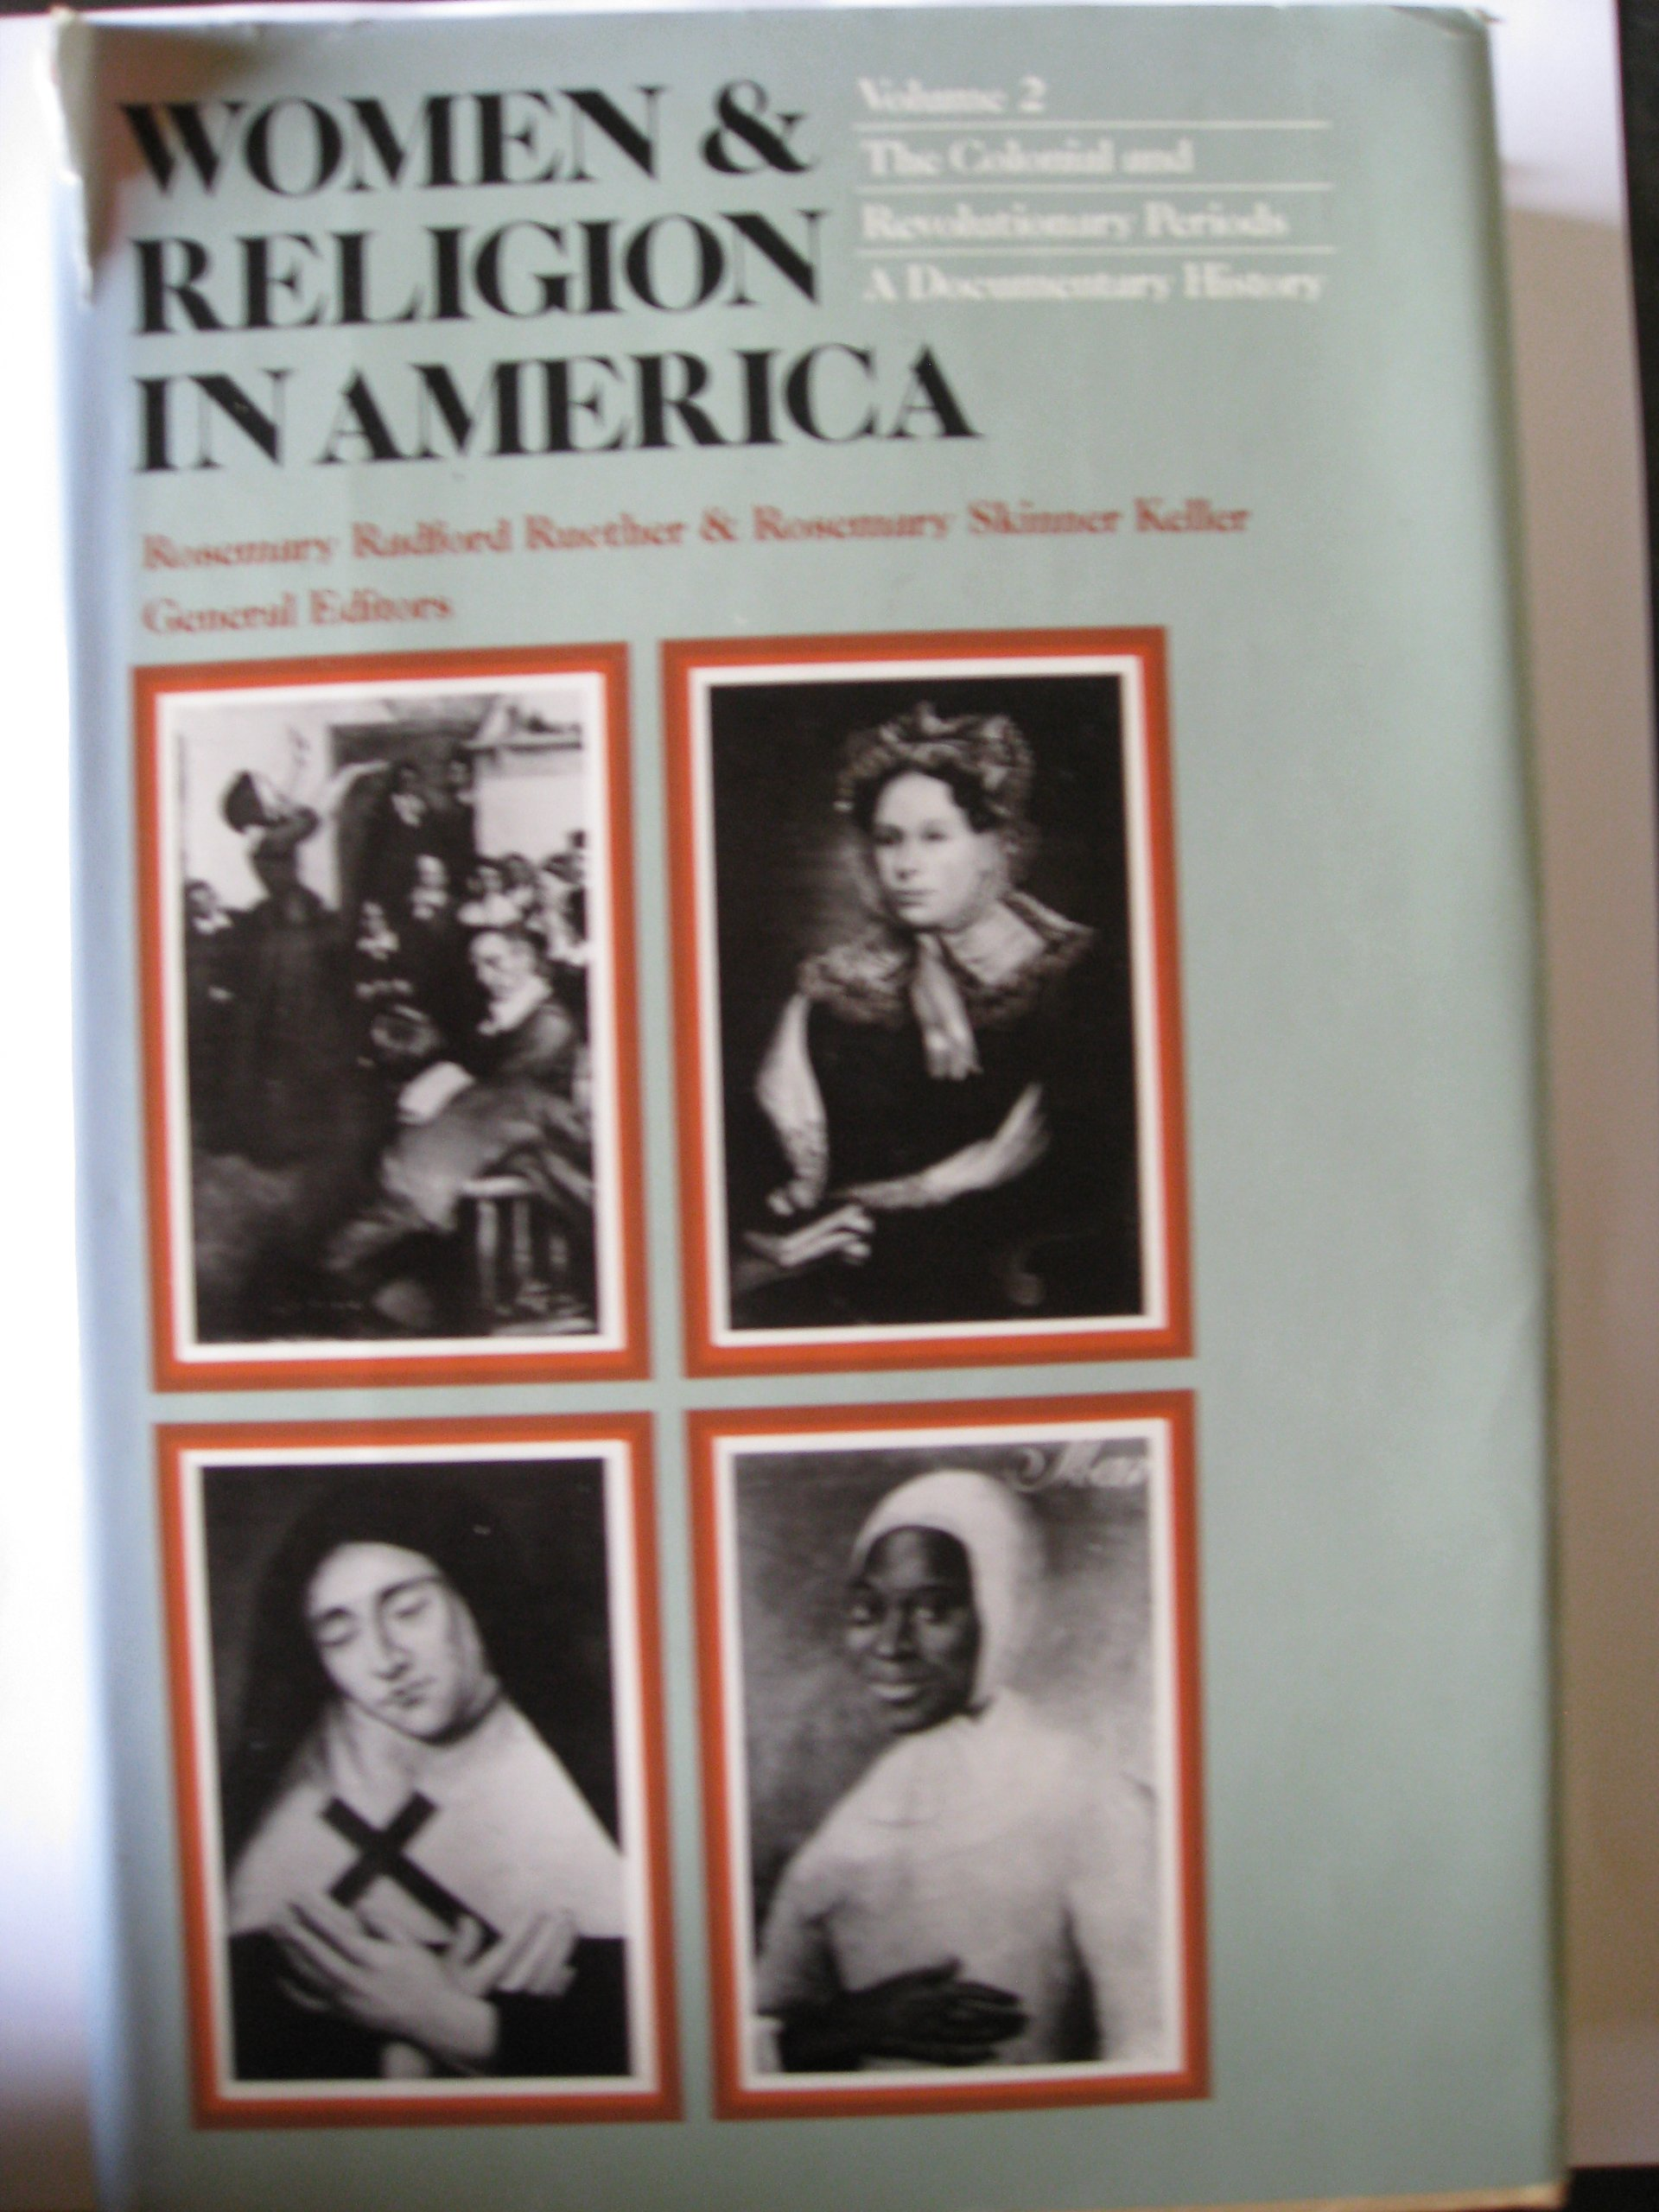 Women and Religion in America: In the Colonial and Revolutionary Periods v. 2 (Women & Religion in America)